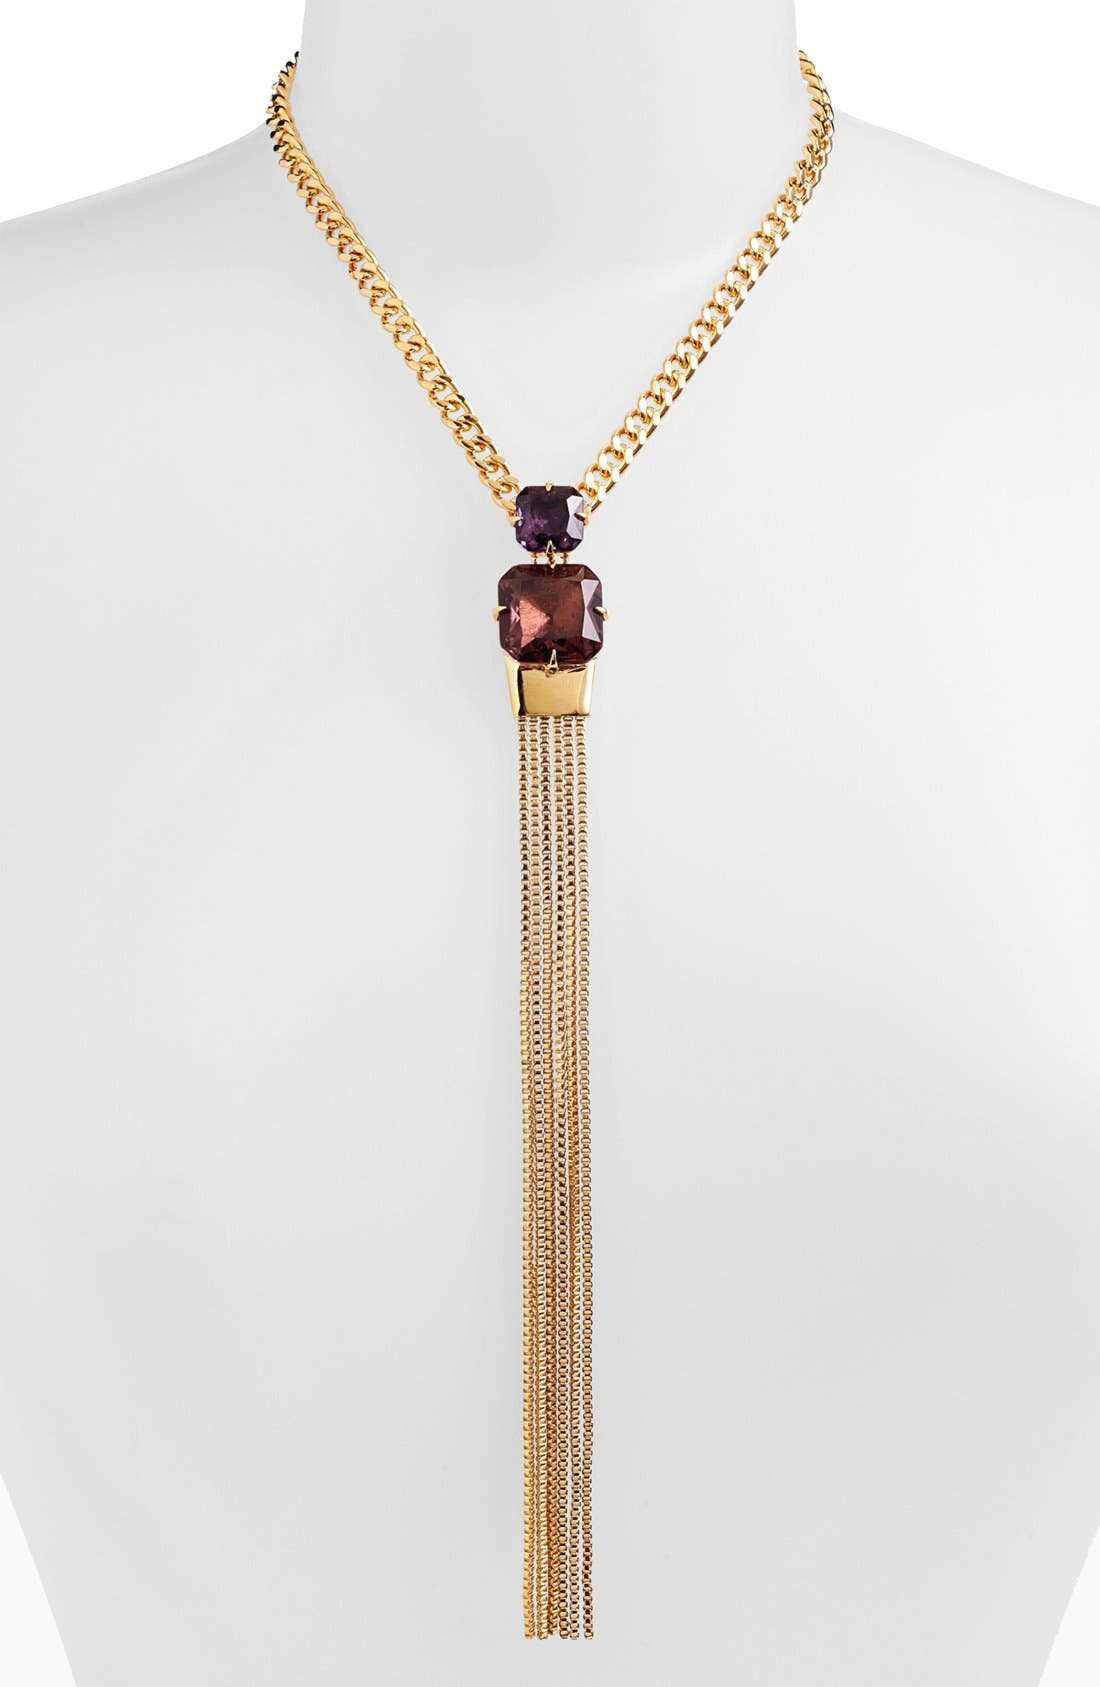 Alternate Image 1 Selected - Vince Camuto 'Jewel Purpose' Stone Tassel Pendant Necklace